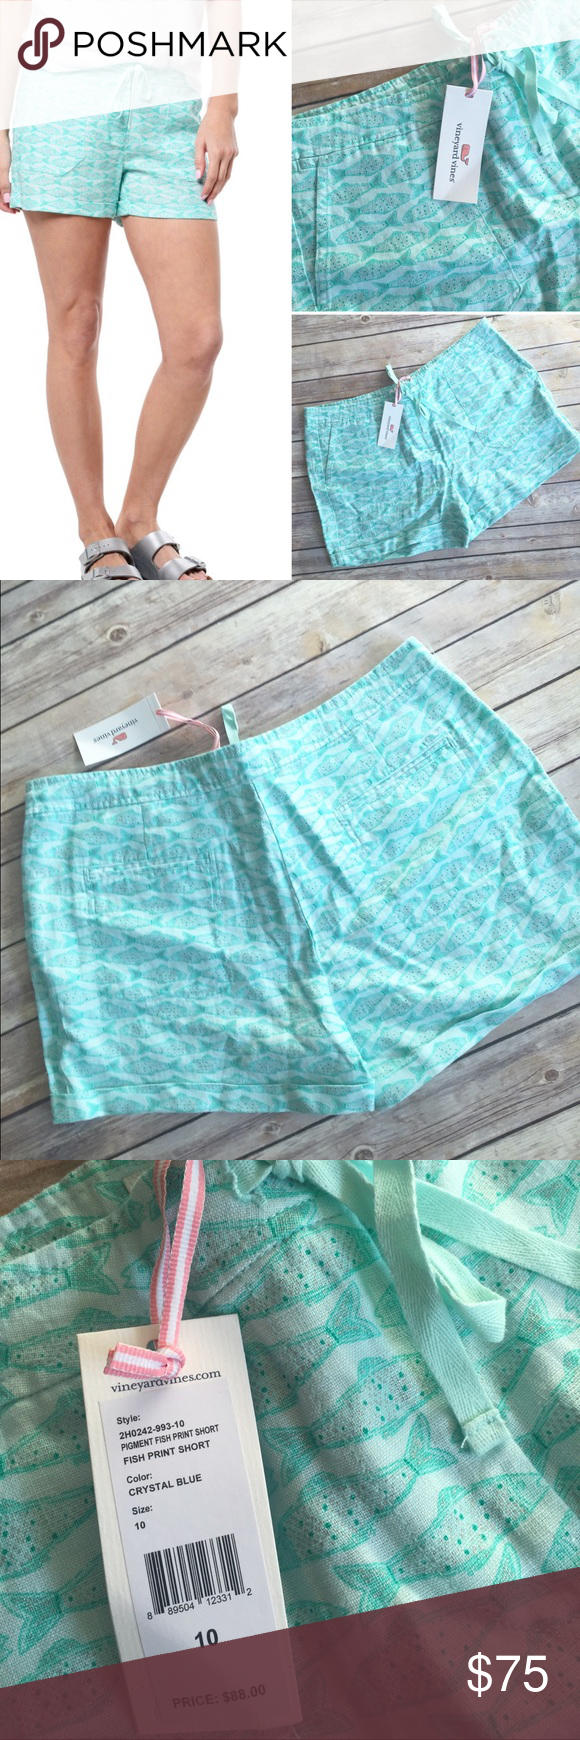 Vineyard Vines Fish Print Linen Shorts Vineyard Vines Fish Print Linen Shorts. Size 10. Color is Crystal Blue. NWT, 100% Linen. Size up for looser fit. ***PRICE IS FIRM, NO TRADES, NO discussion on price in comments*** Vineyard Vines Shorts